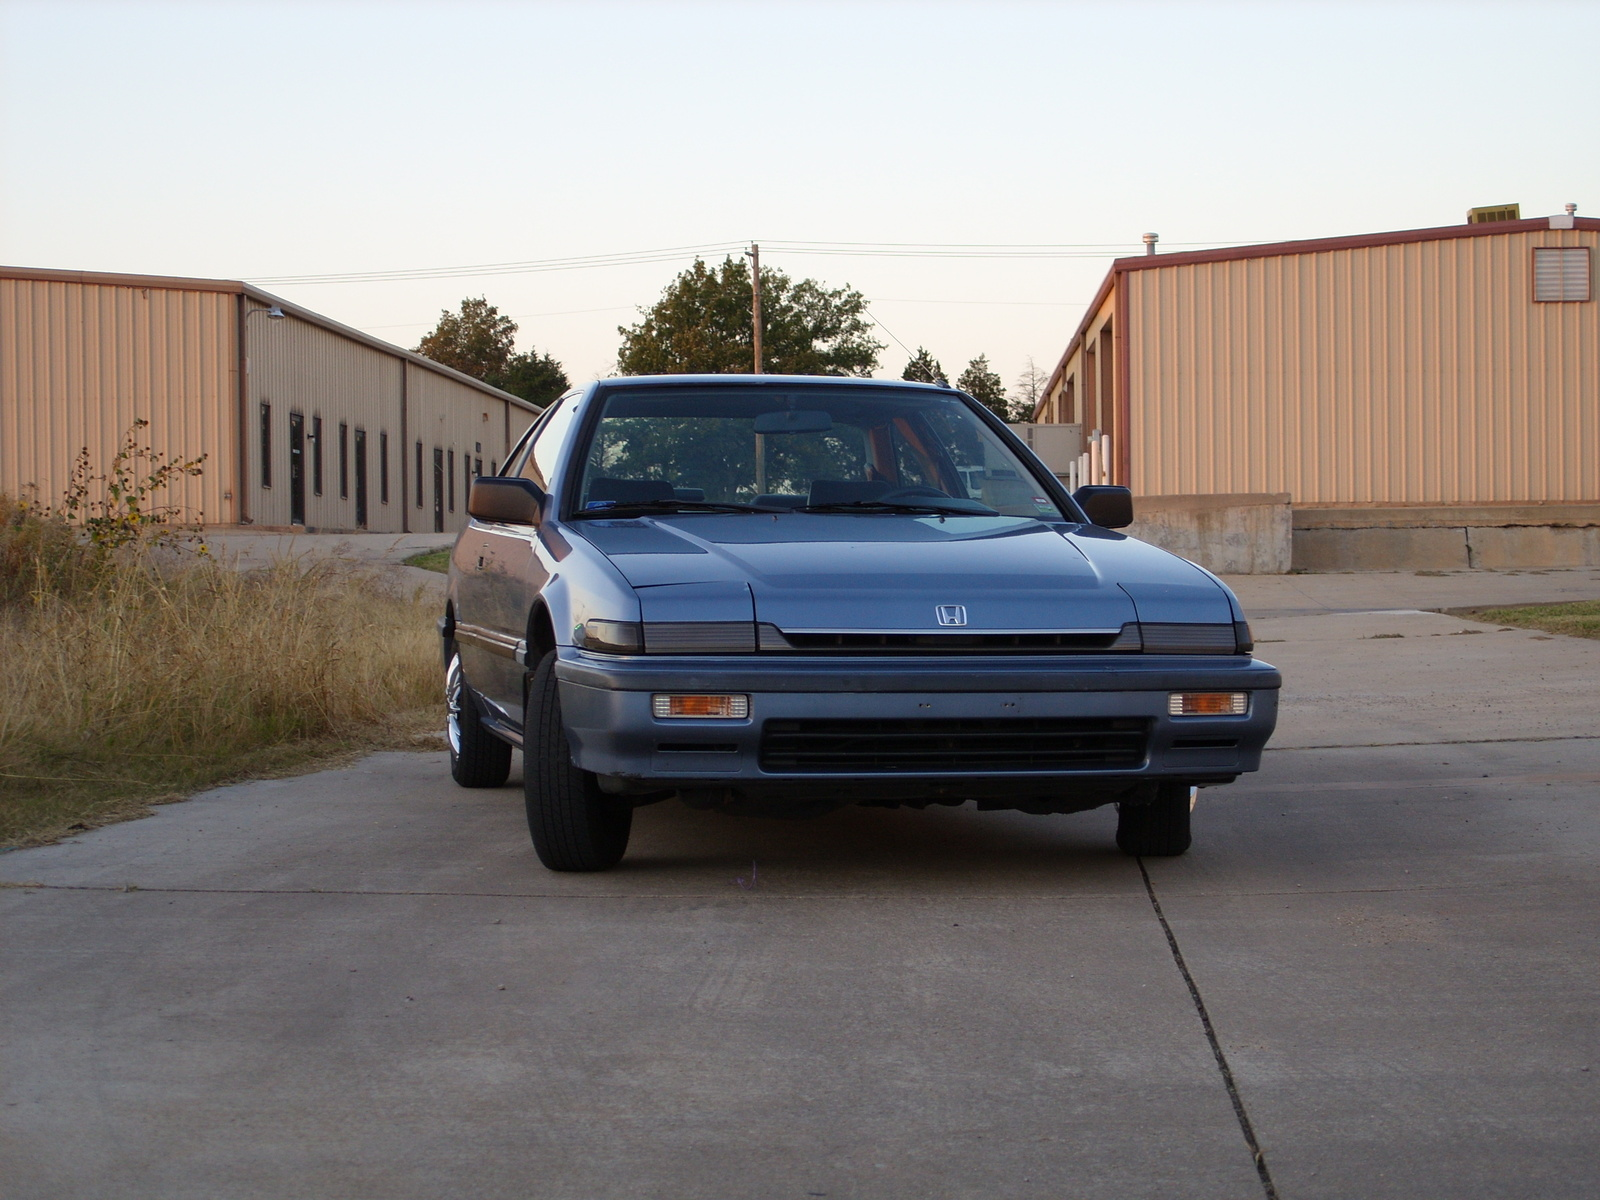 Picture of 1989 Honda Accord DX Coupe, exterior